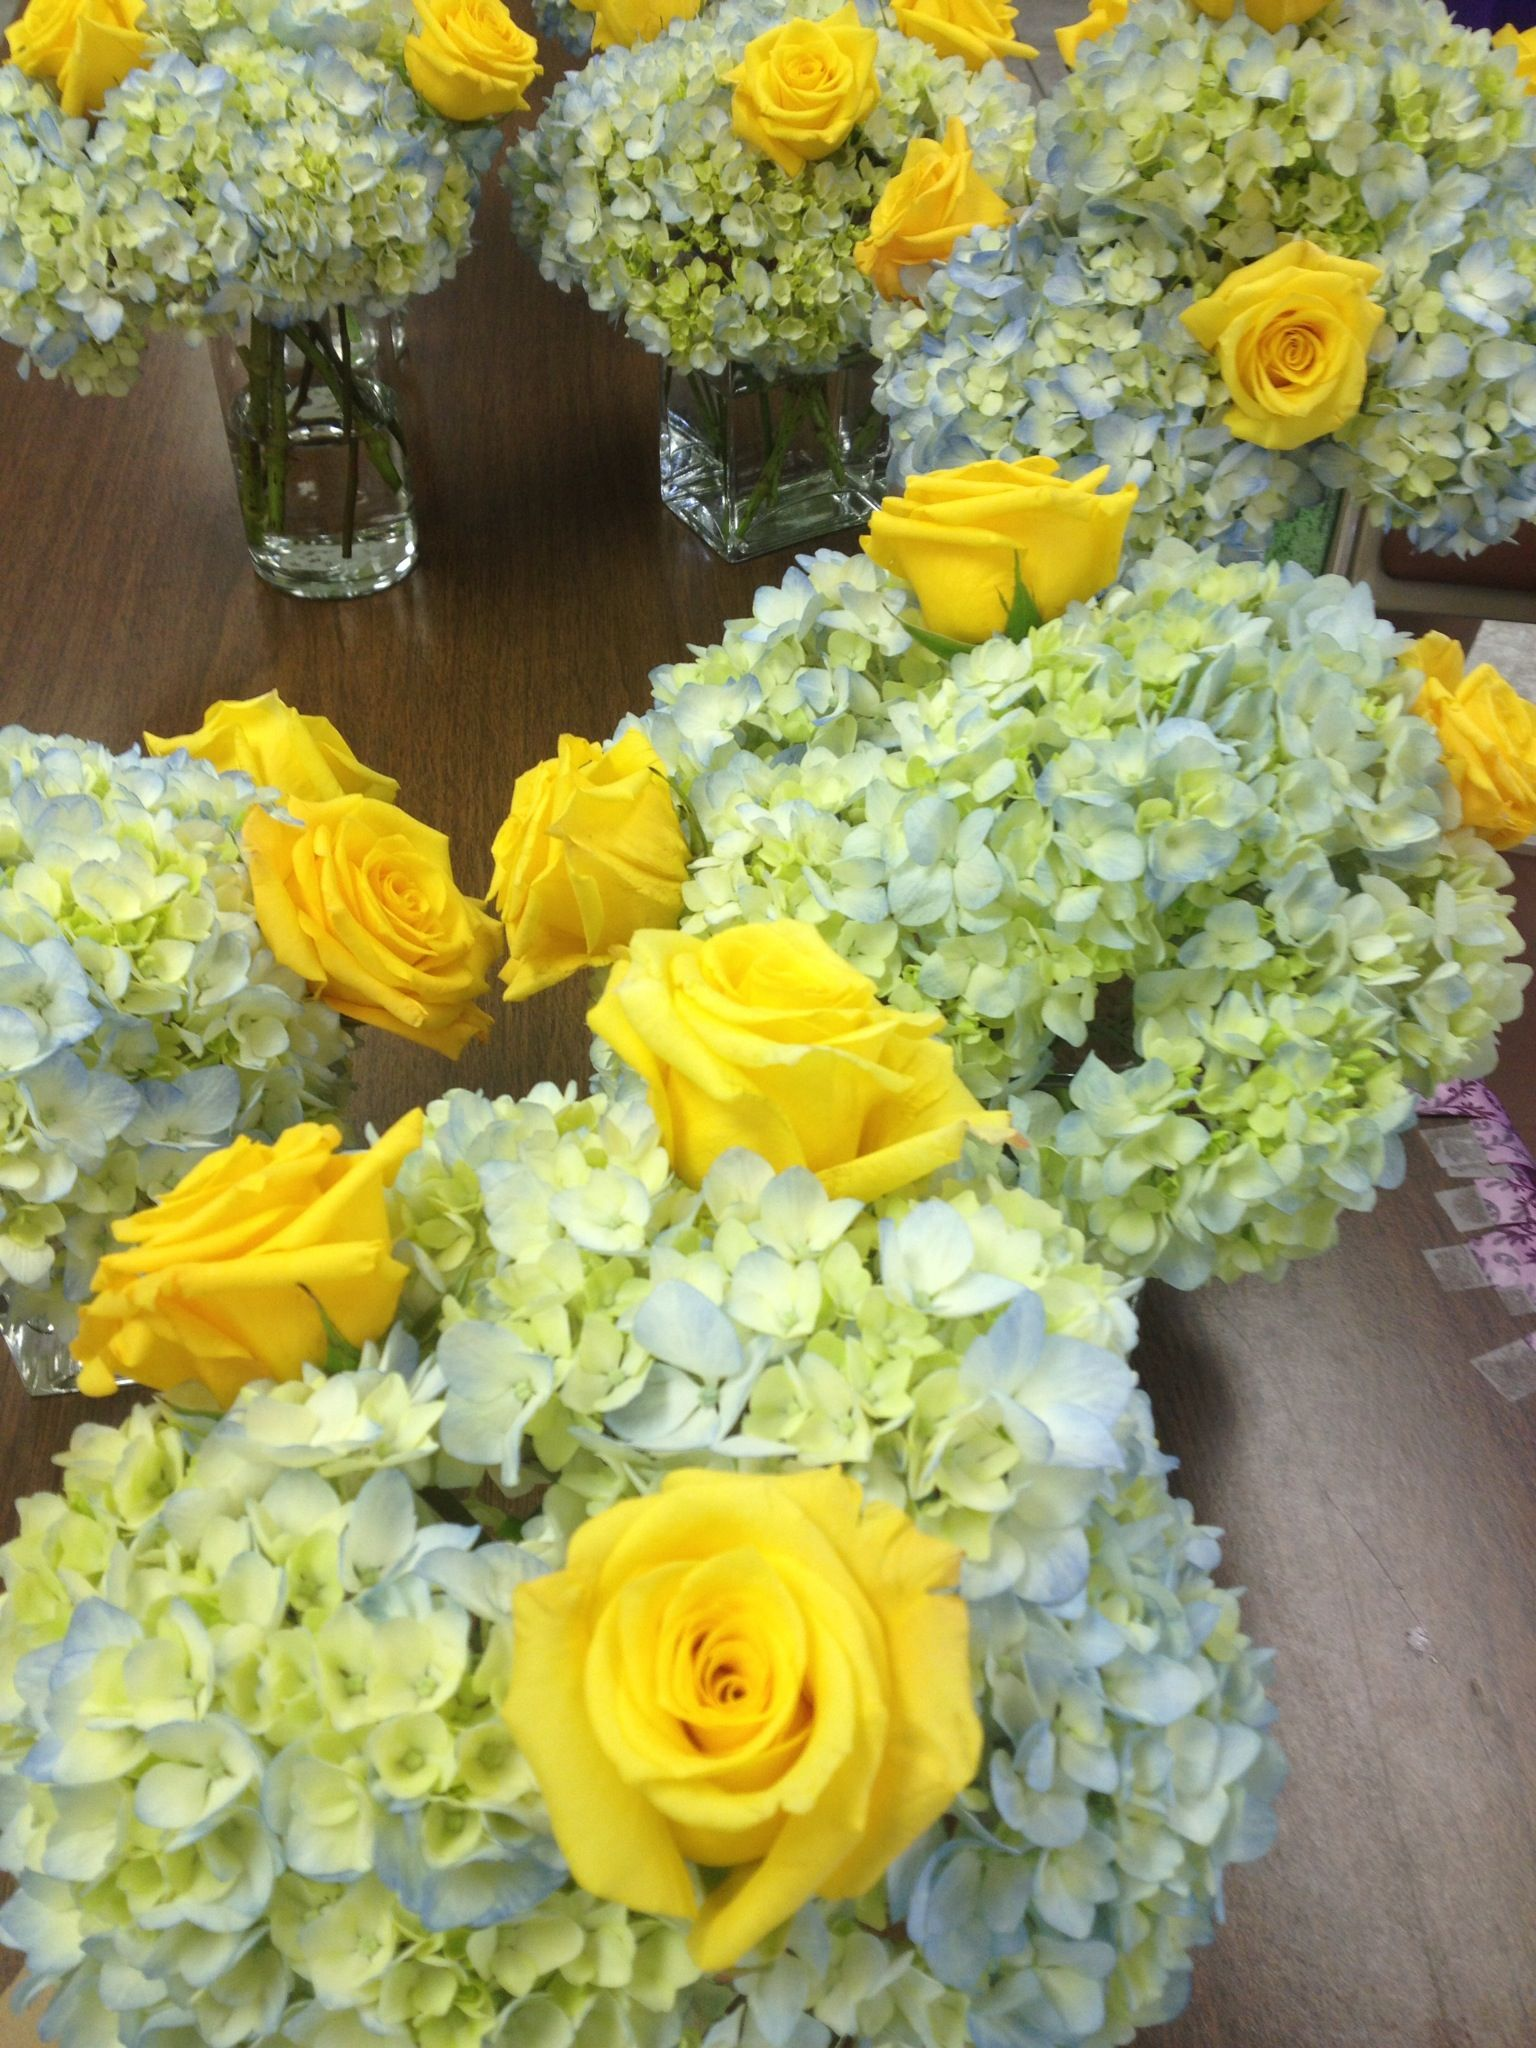 I Bought Sams Club Flowers Online Blue Hydrangeas And Yellow Roses